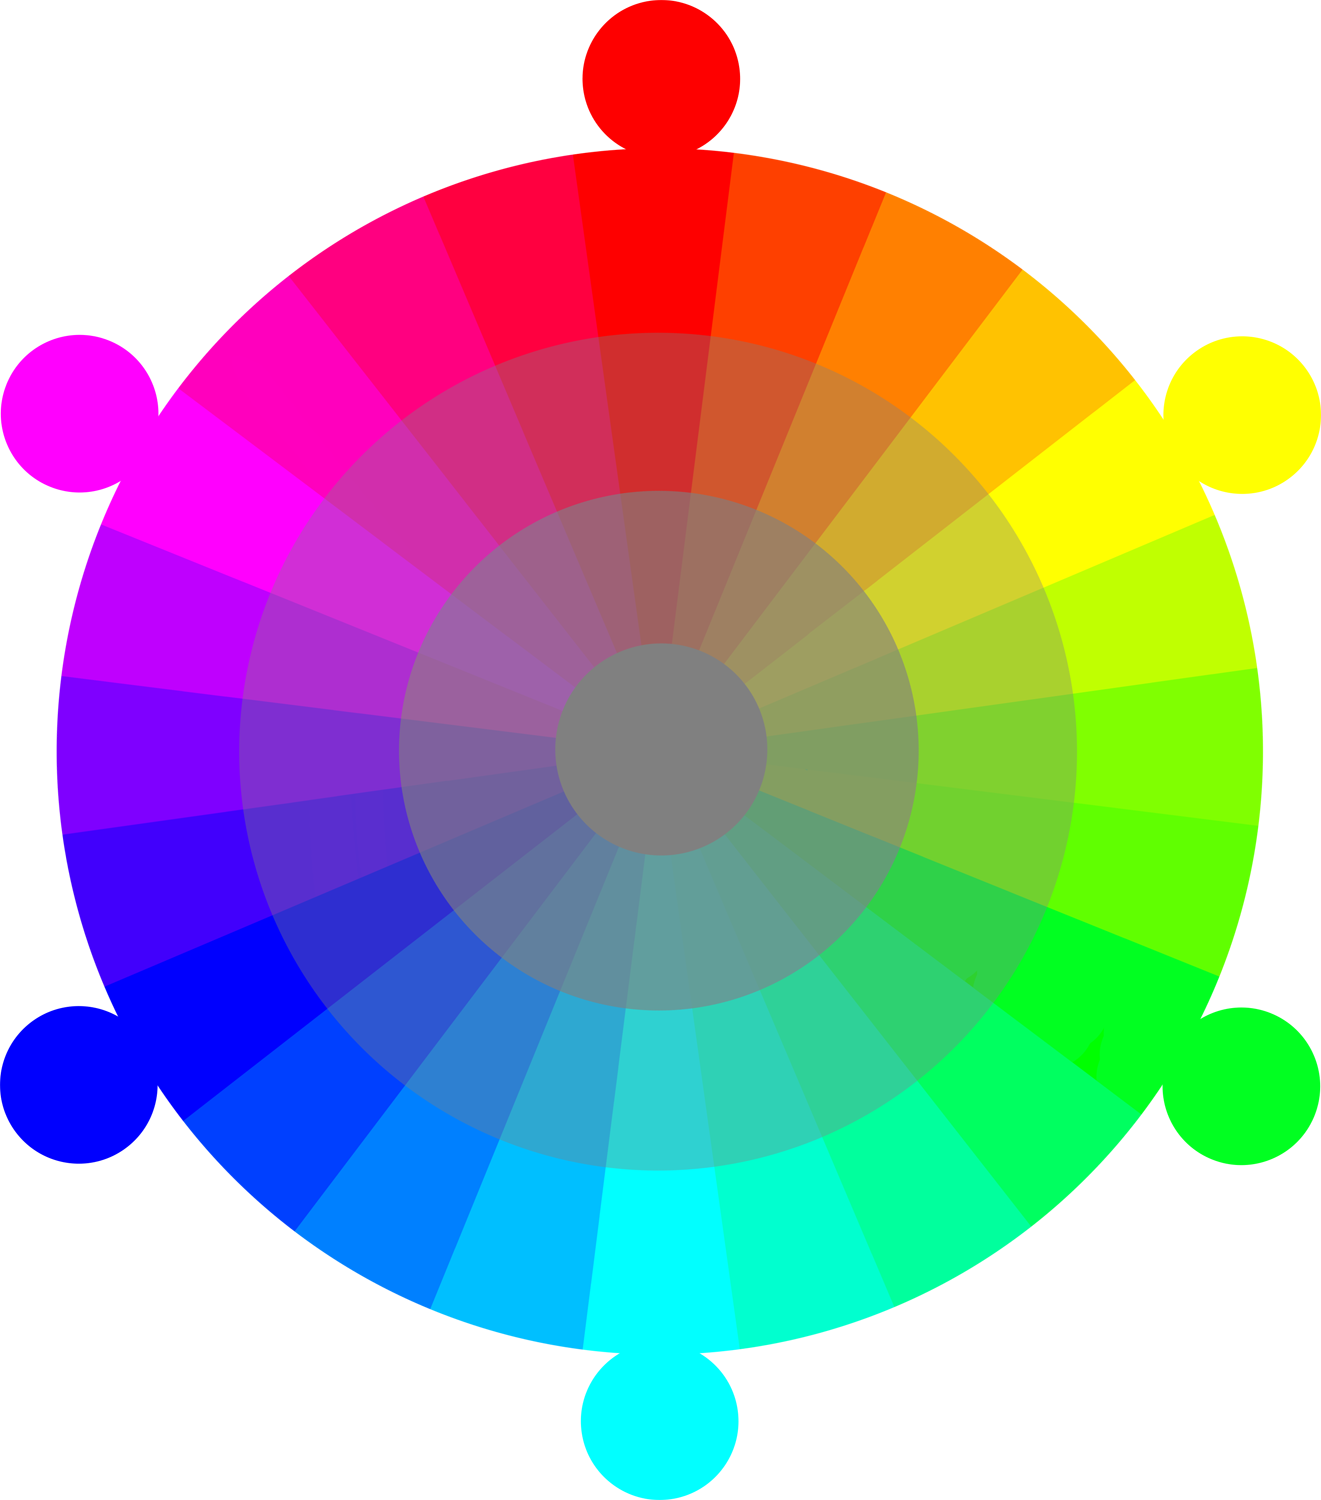 Color Wheel Rgb Cmyk 24 Hour With 2 Tones